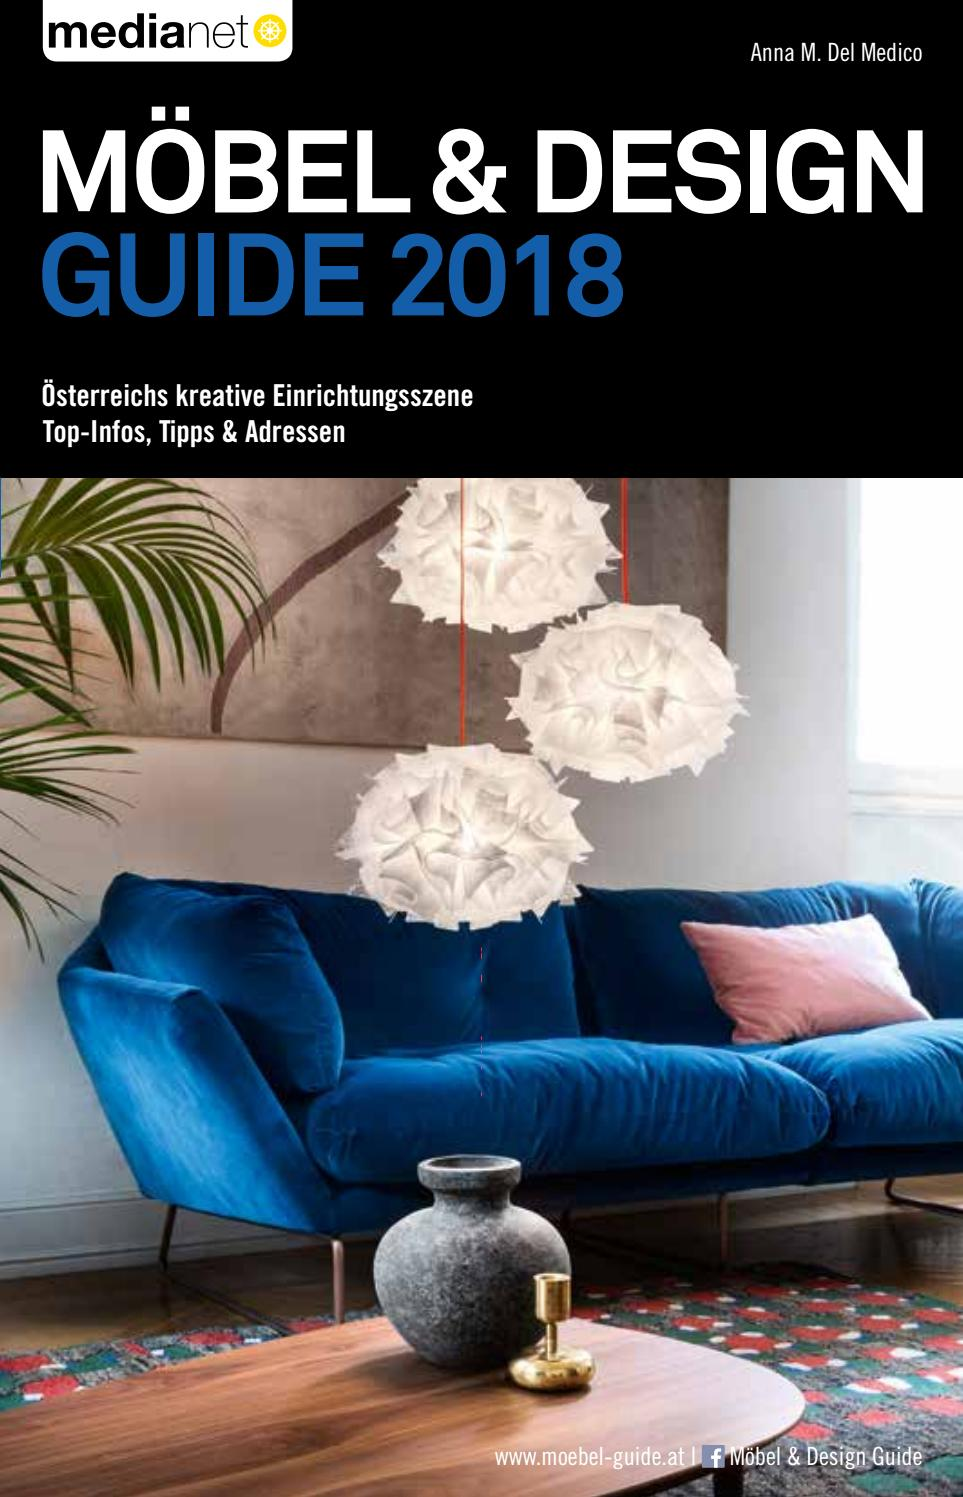 Möbel & Design Guide 2018 by medianet - issuu